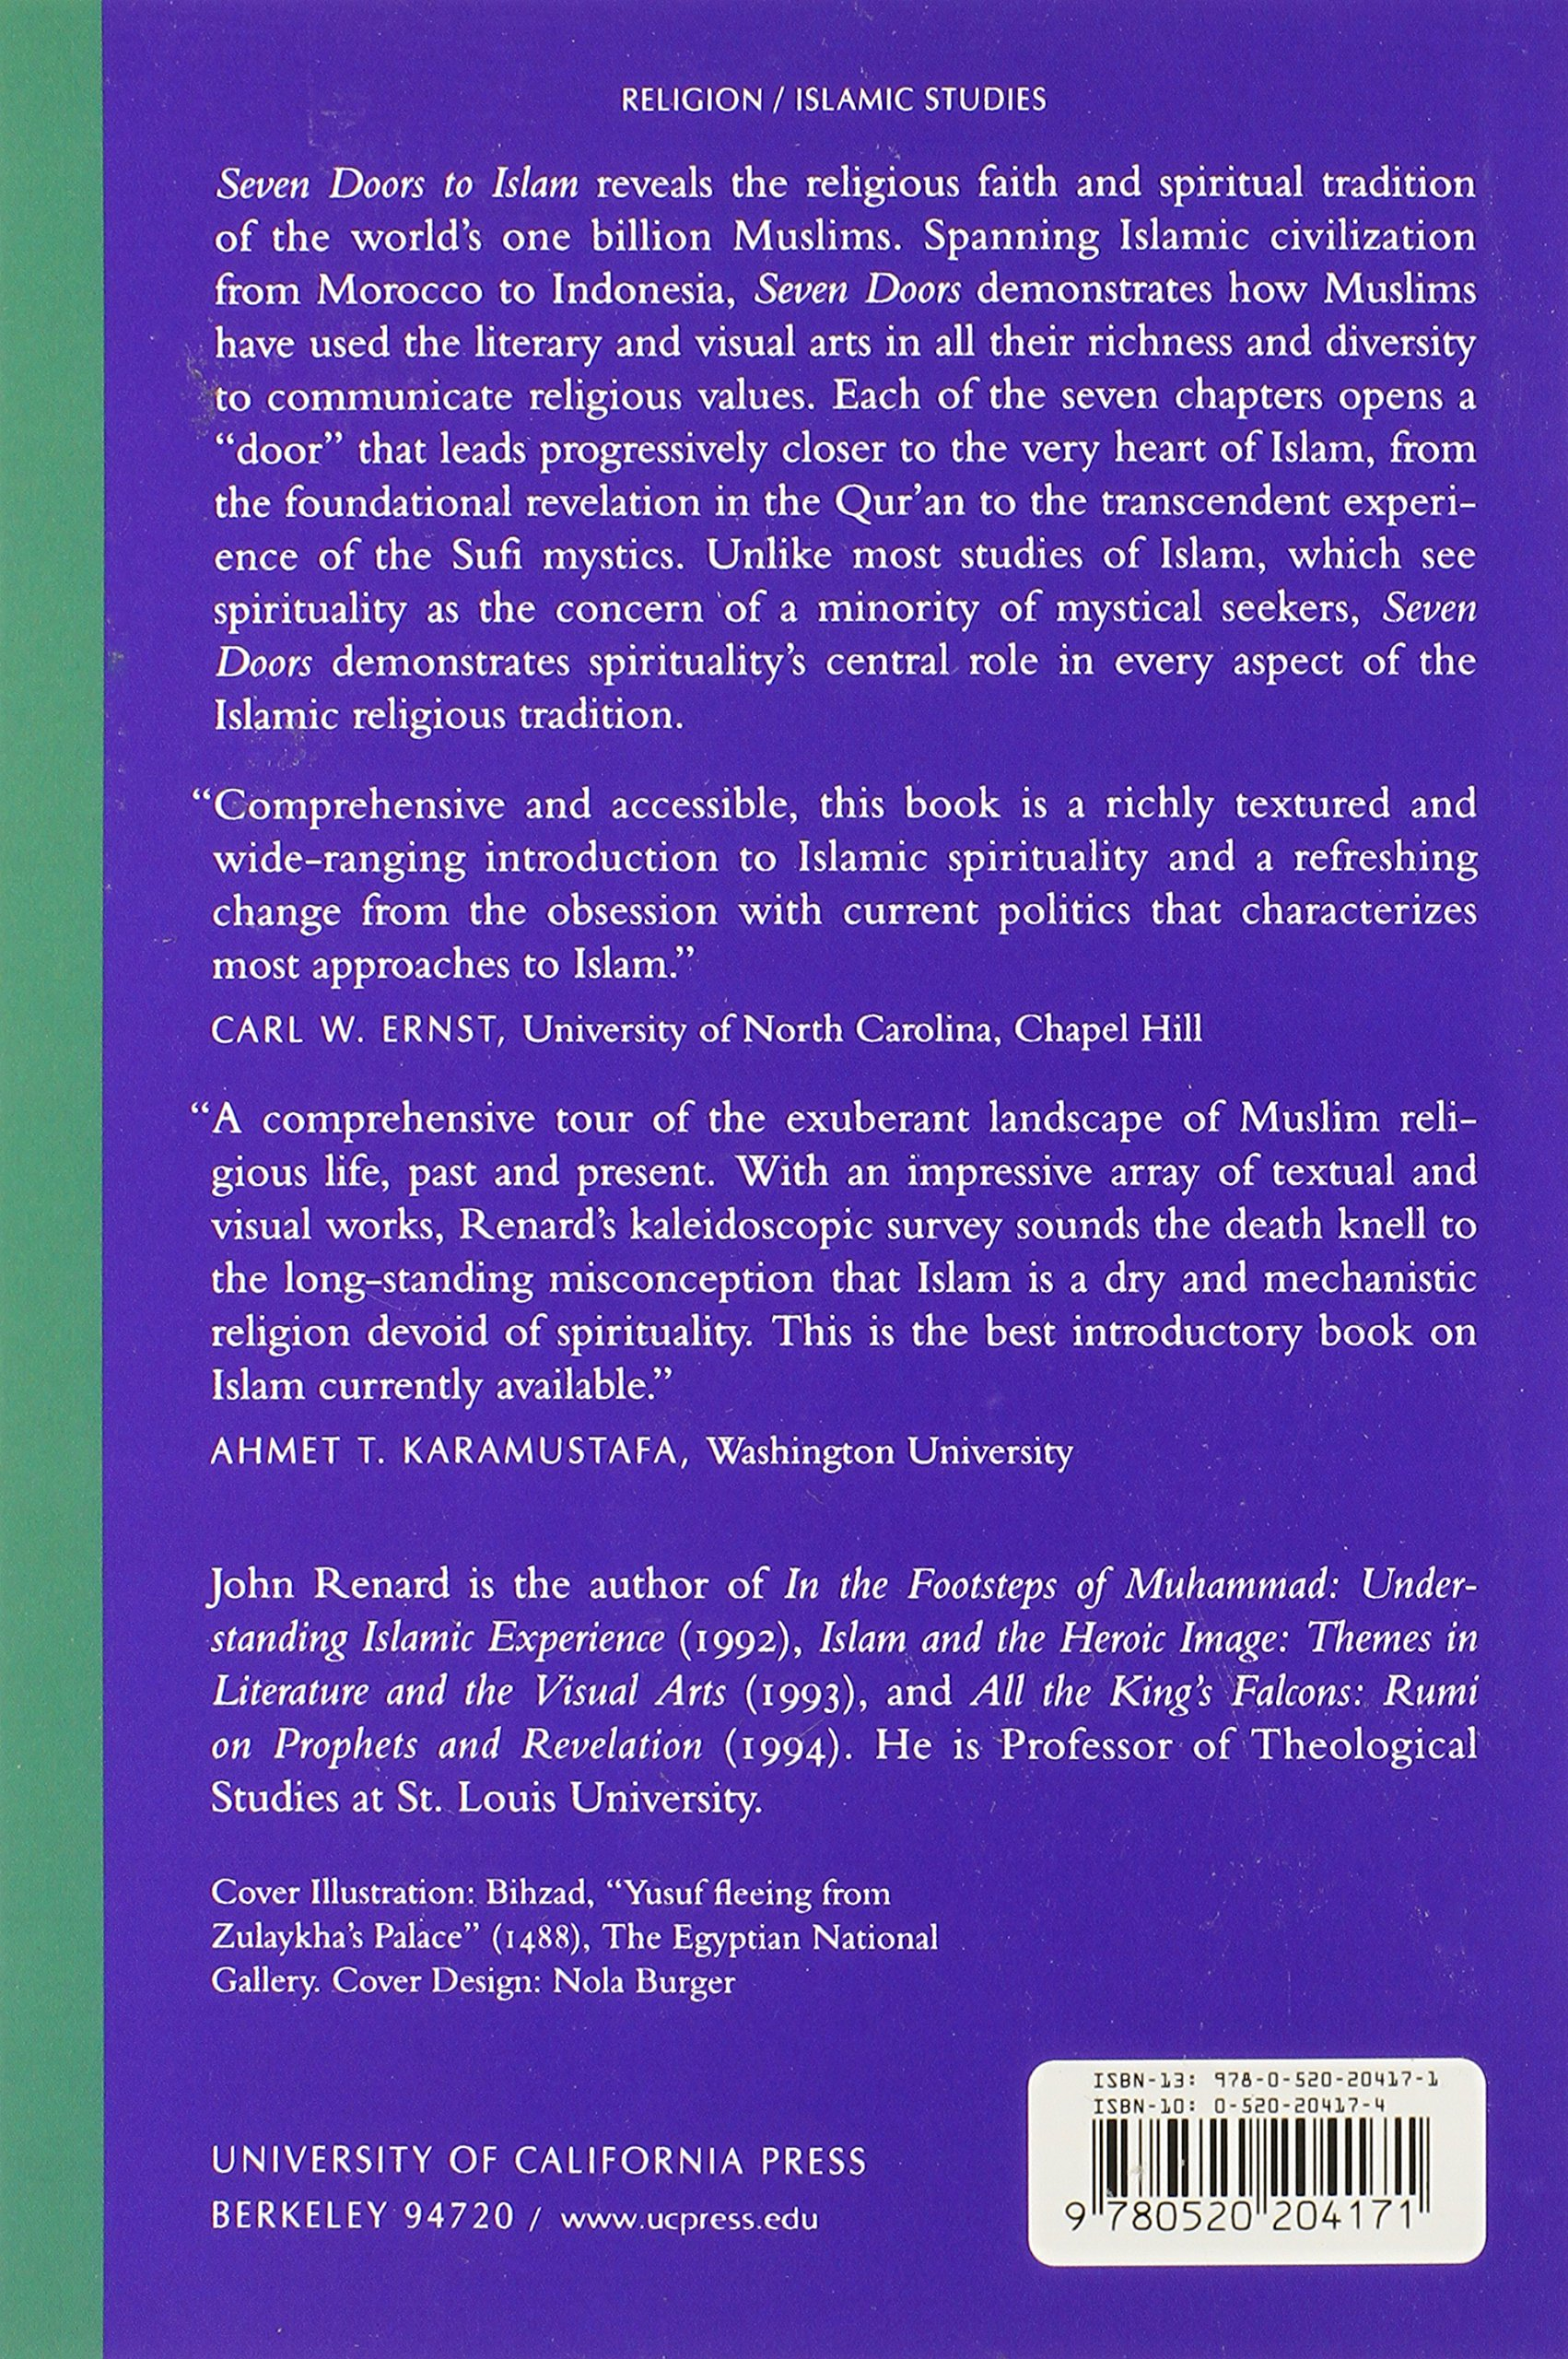 Seven Doors to Islam: Spirituality and the Religious Life of Muslims